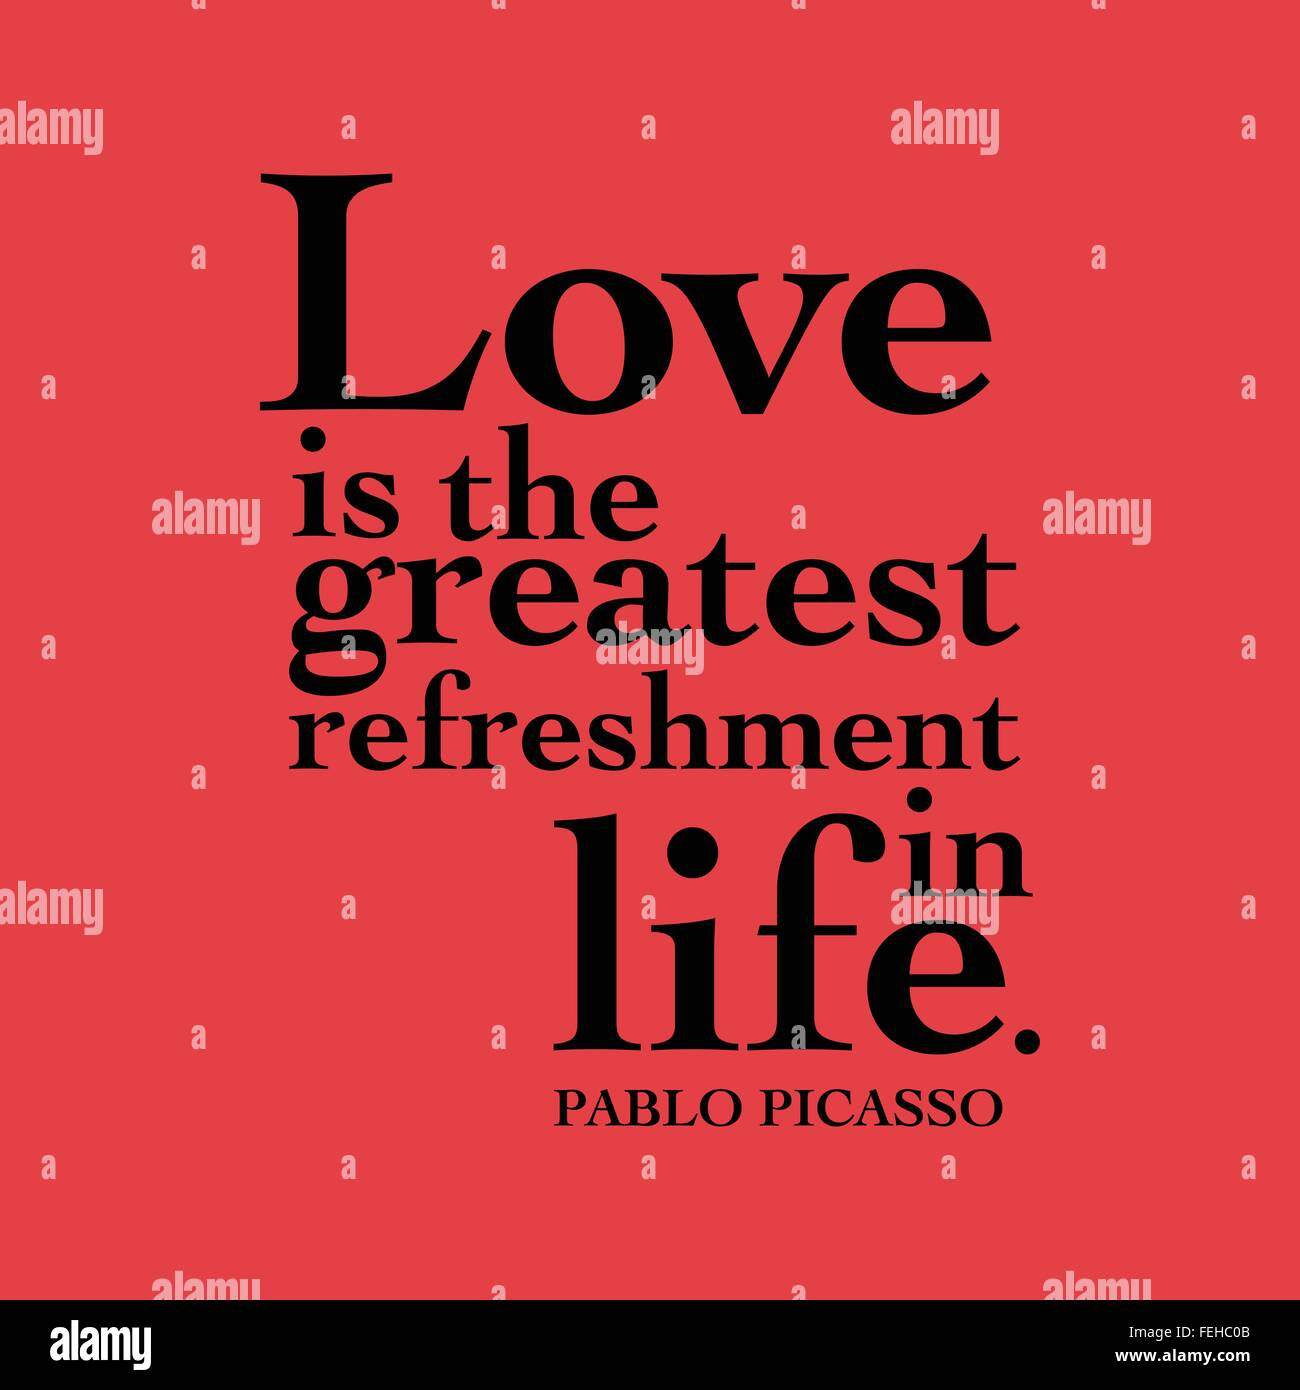 'Love is the greatest refreshment in life.' Pablo Picasso - Stock Vector